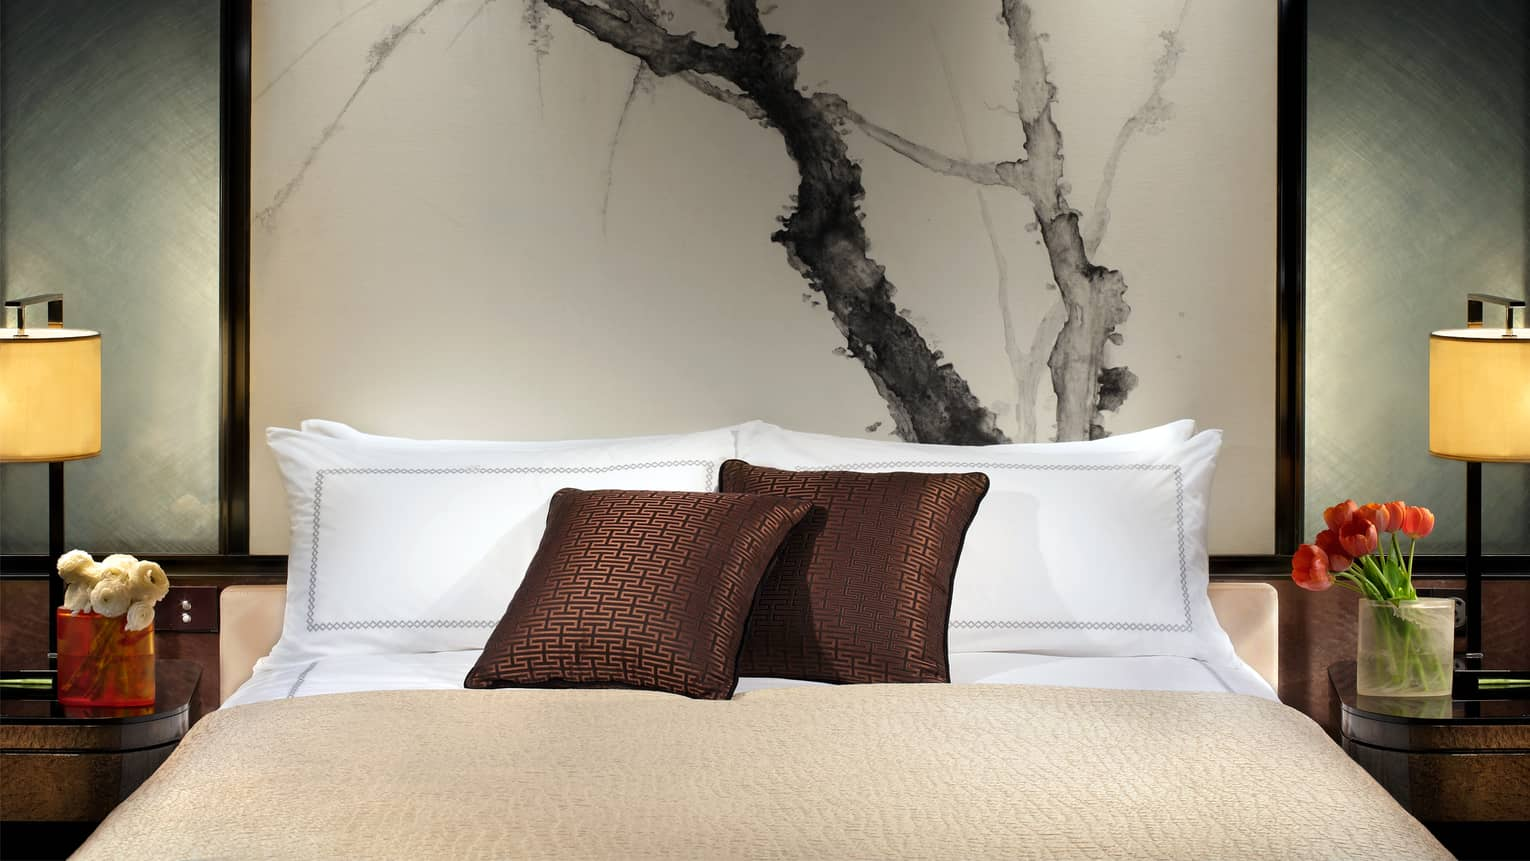 Close-up of bed with chocolate-brown accent pillows, tall headboard with black-and-white painting of branches